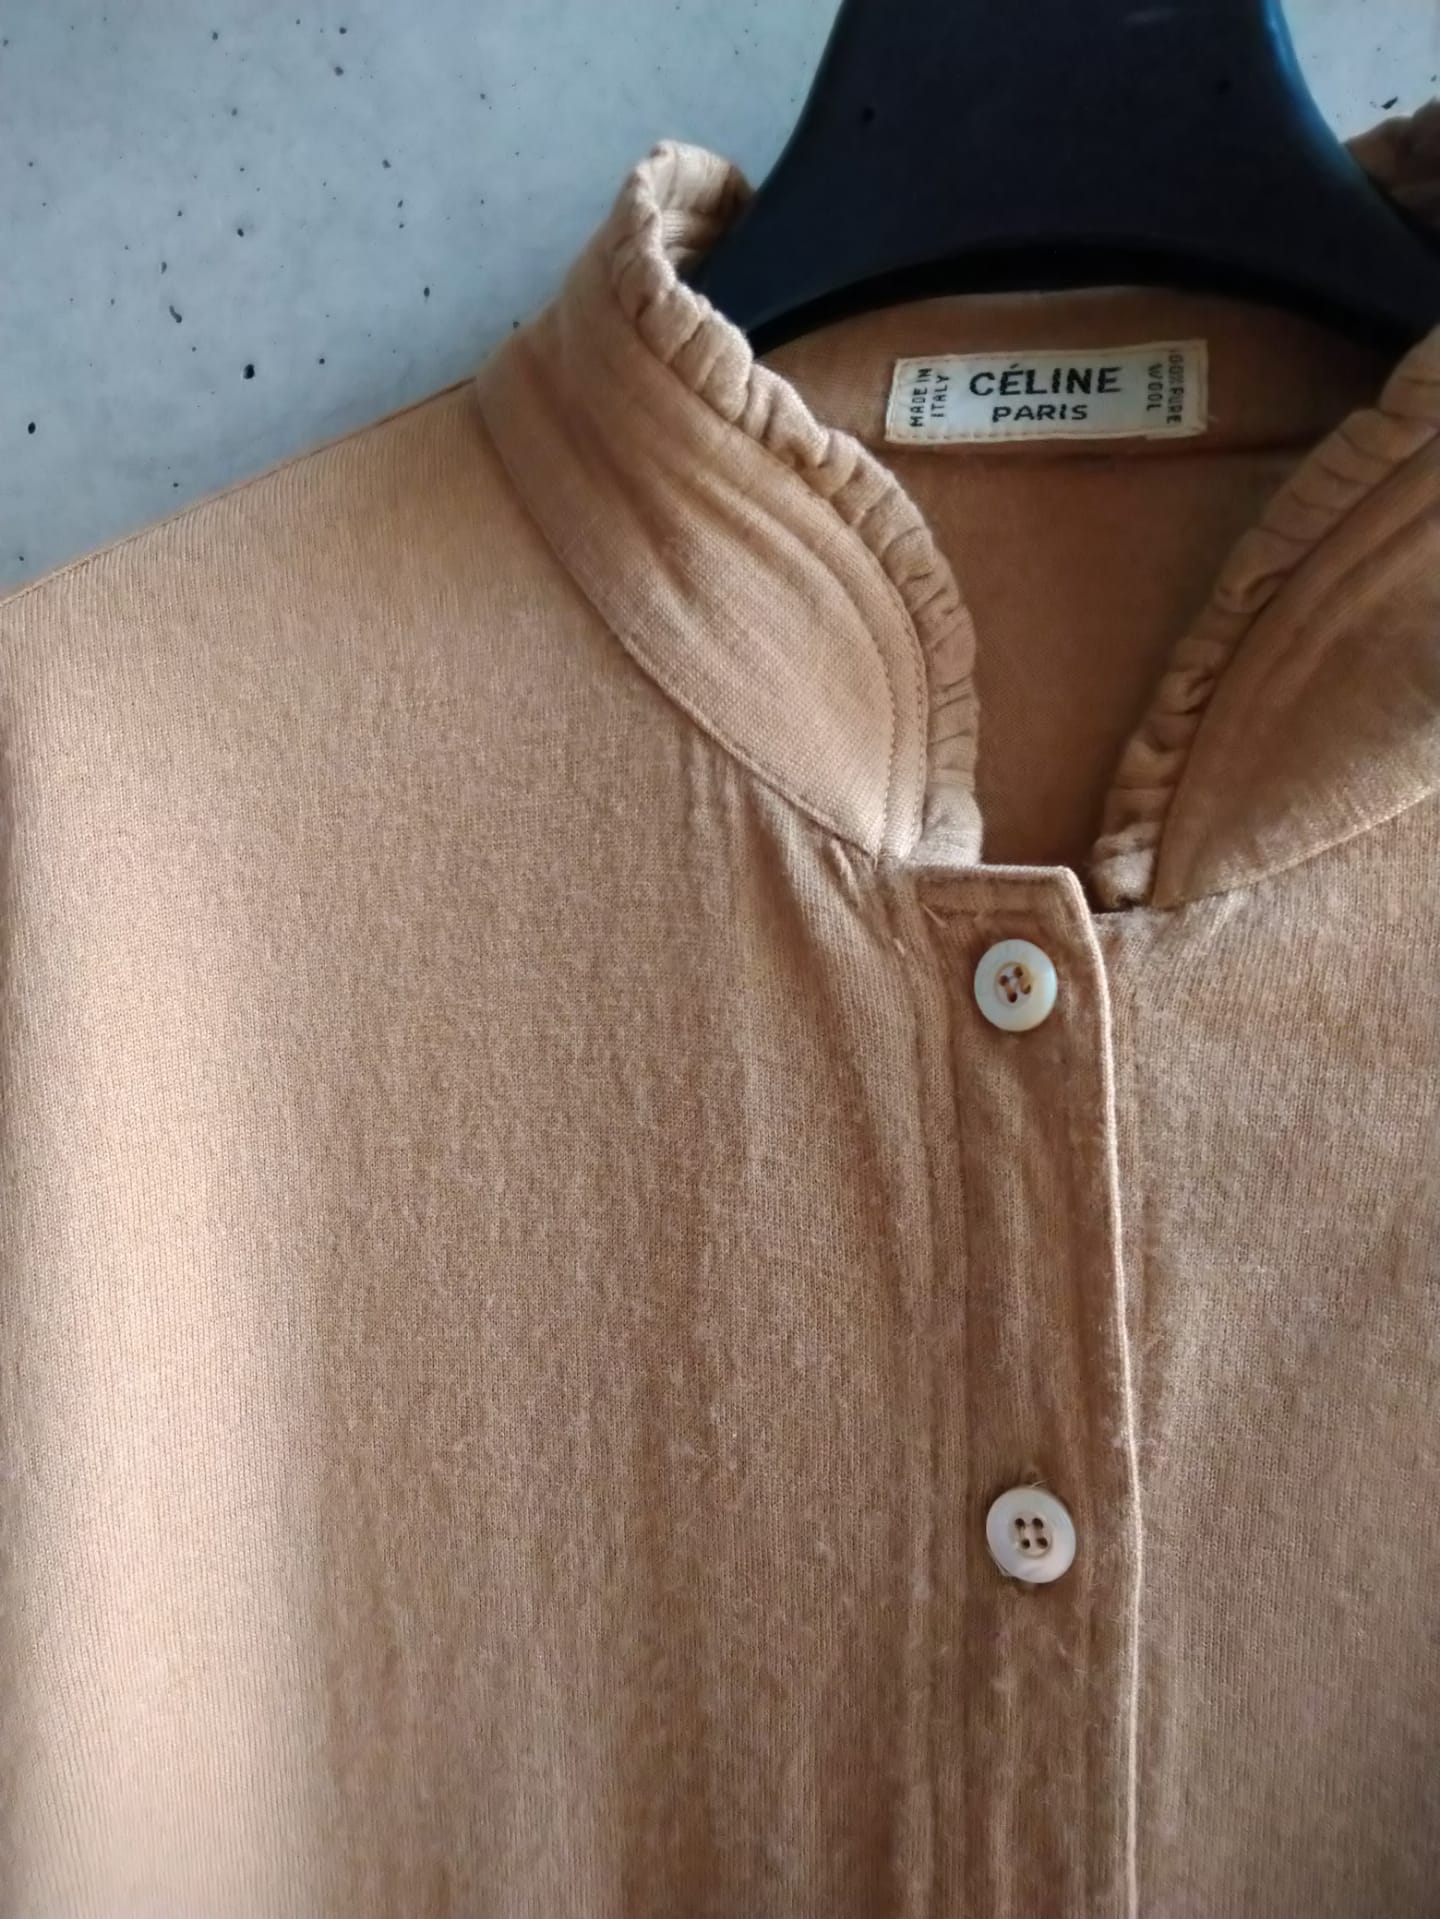 Celine wool shirt